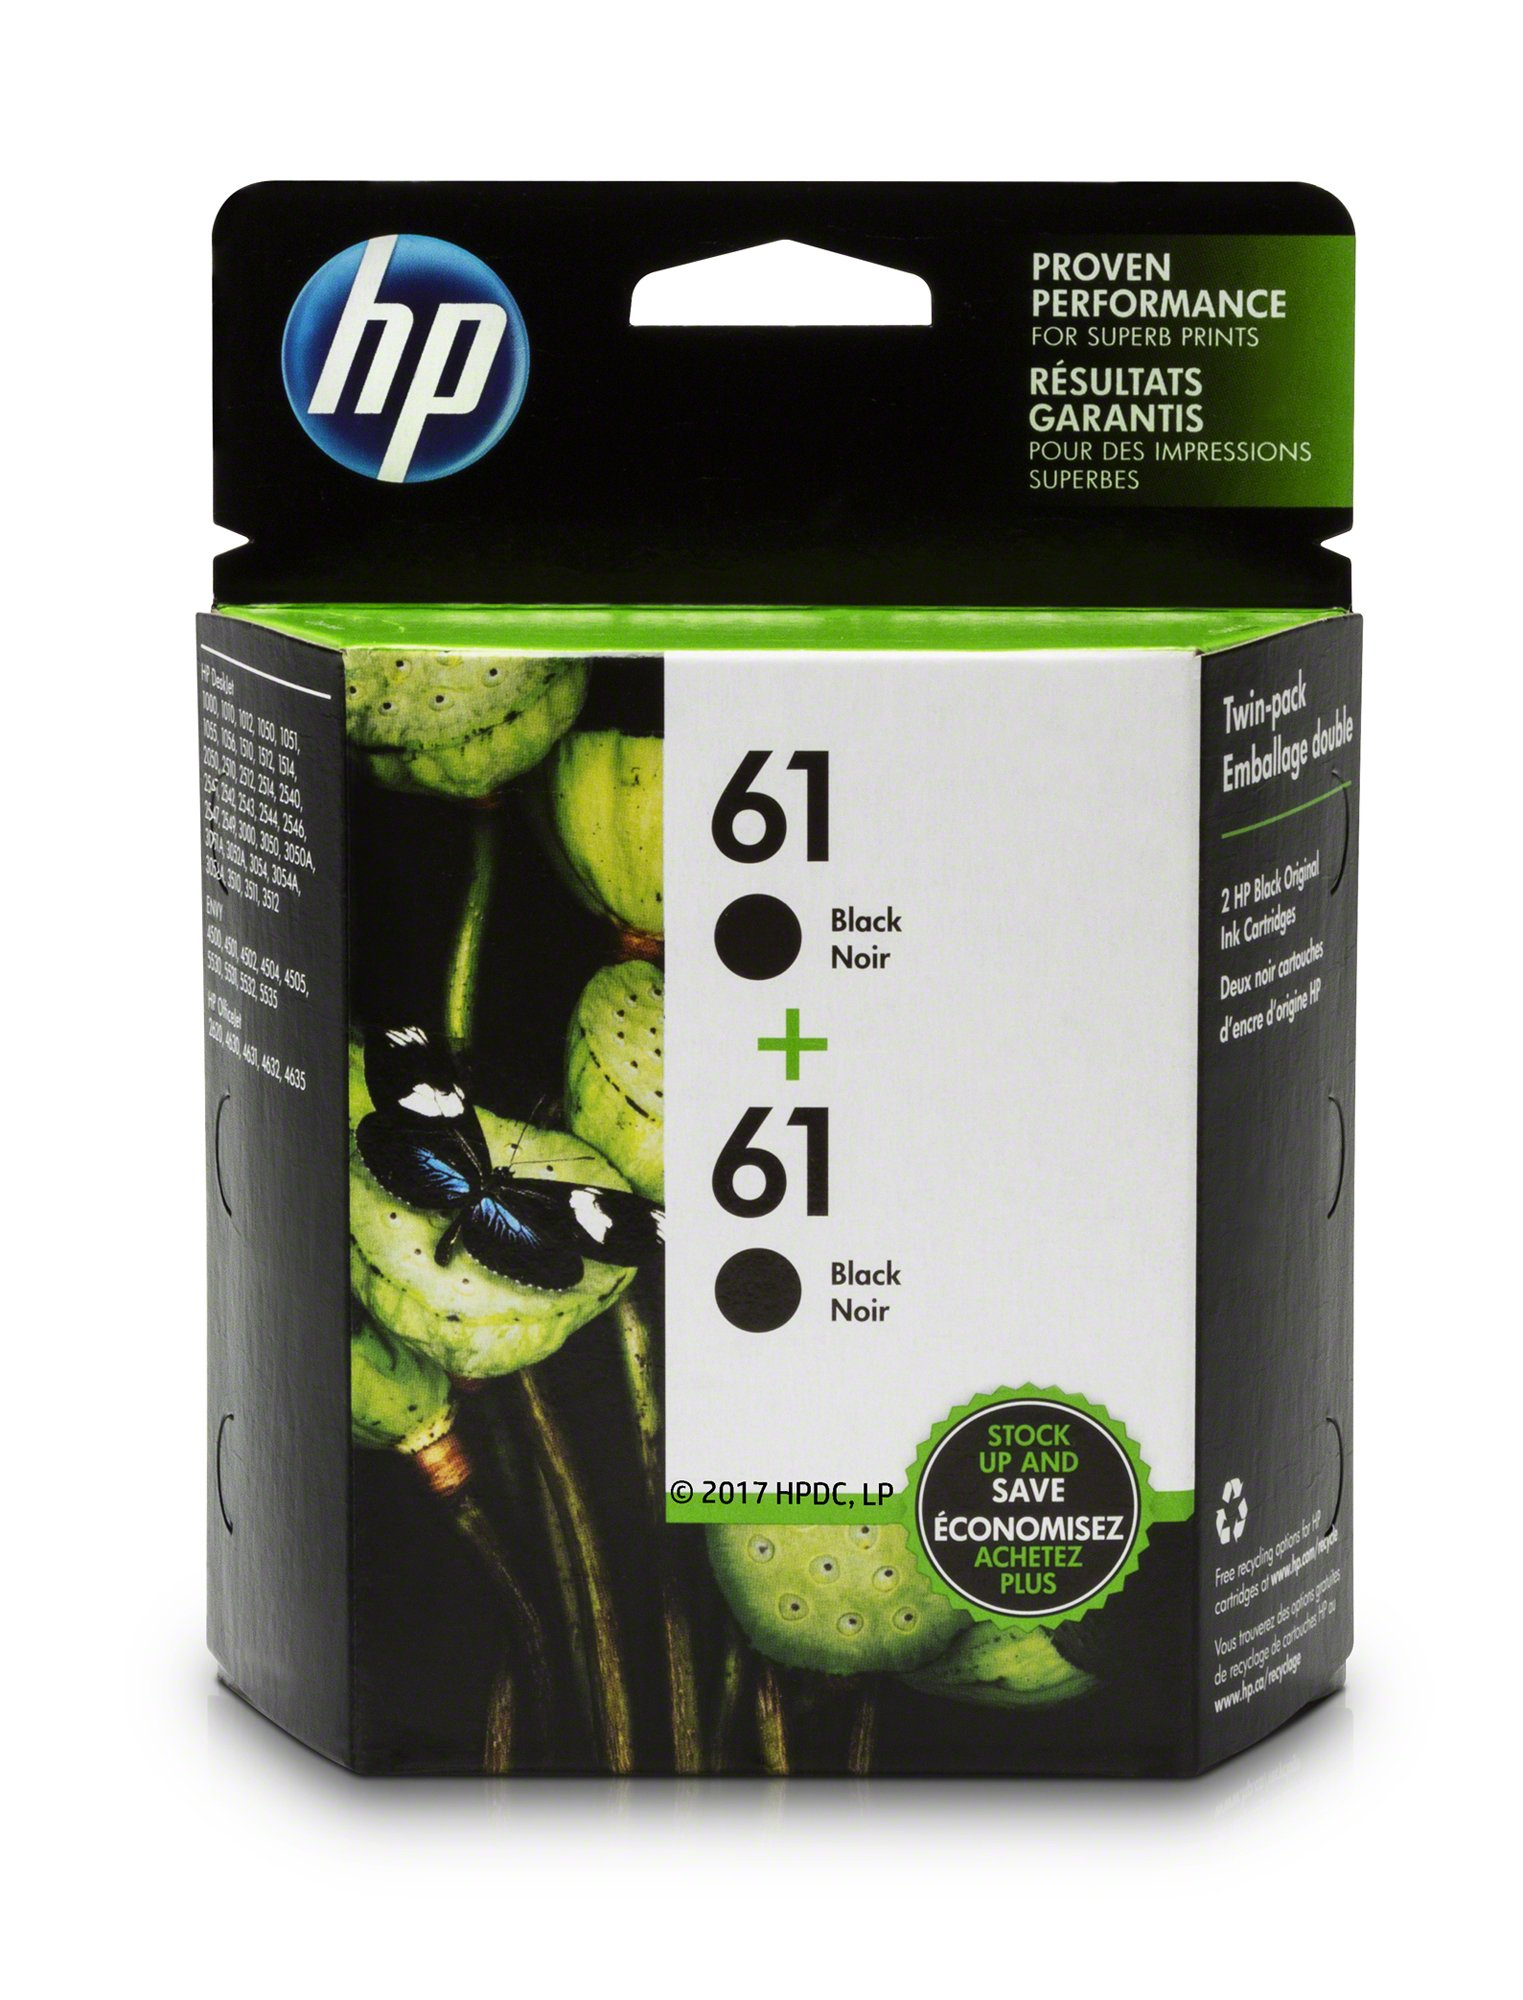 HP 61 Black Ink Cartridge (CH561WN), 2 Ink Cartridges (CZ073FN) for HP Deskjet 1000 1010 1012 1050 1051 1055 1056 1510 1512 1514 1051 2050 2510 2512 2514 2540 2541 2542 2543 2544 2546 2547 3000 3050 3051 3052 3054 3056 3510 3511 3512HP ENVY 4500 4502 4504